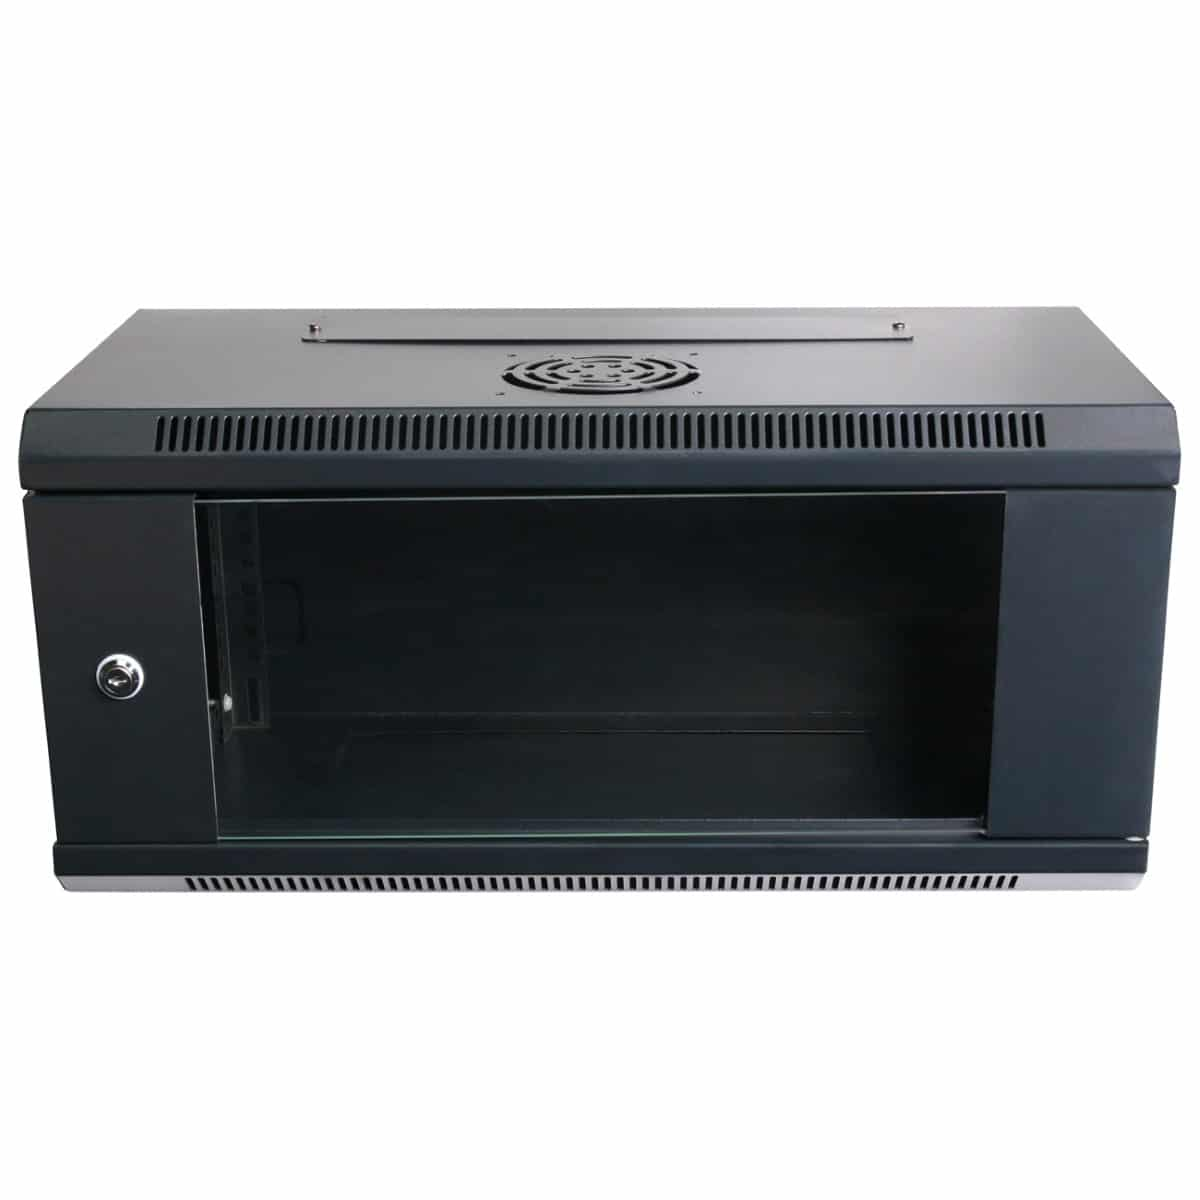 4RU 300mm Deep Wall Mount Cabinet RW-4R-300 image1